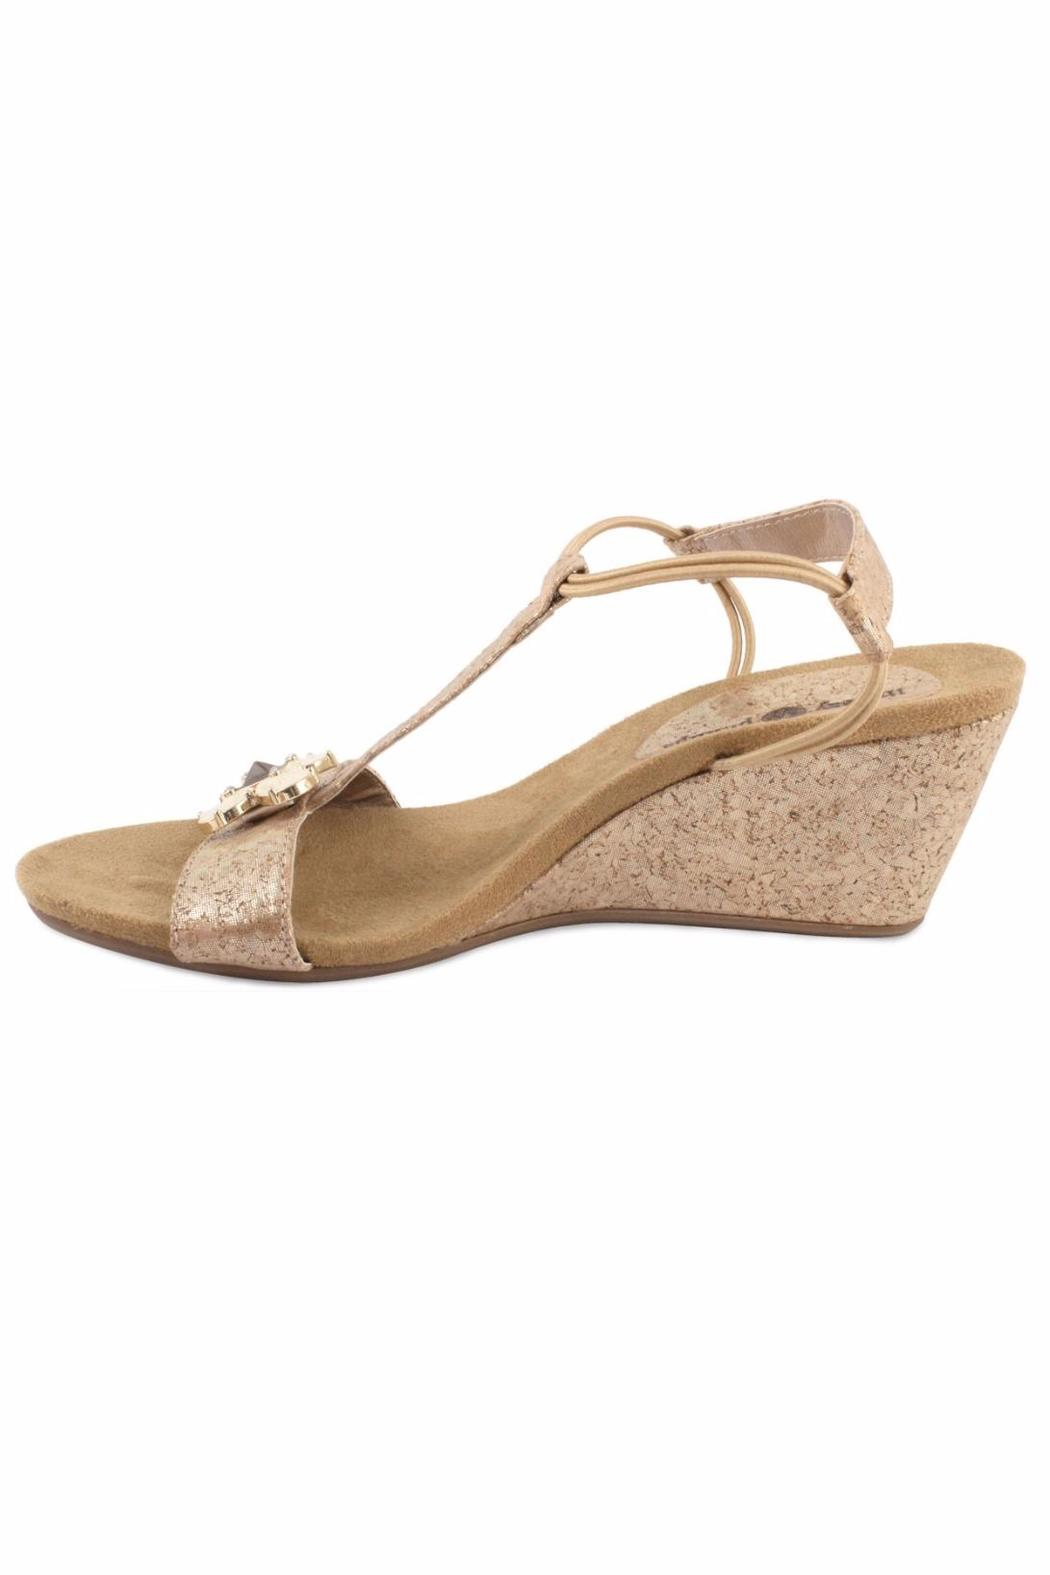 Lindsay Phillips Gold Platform Wedge - Main Image